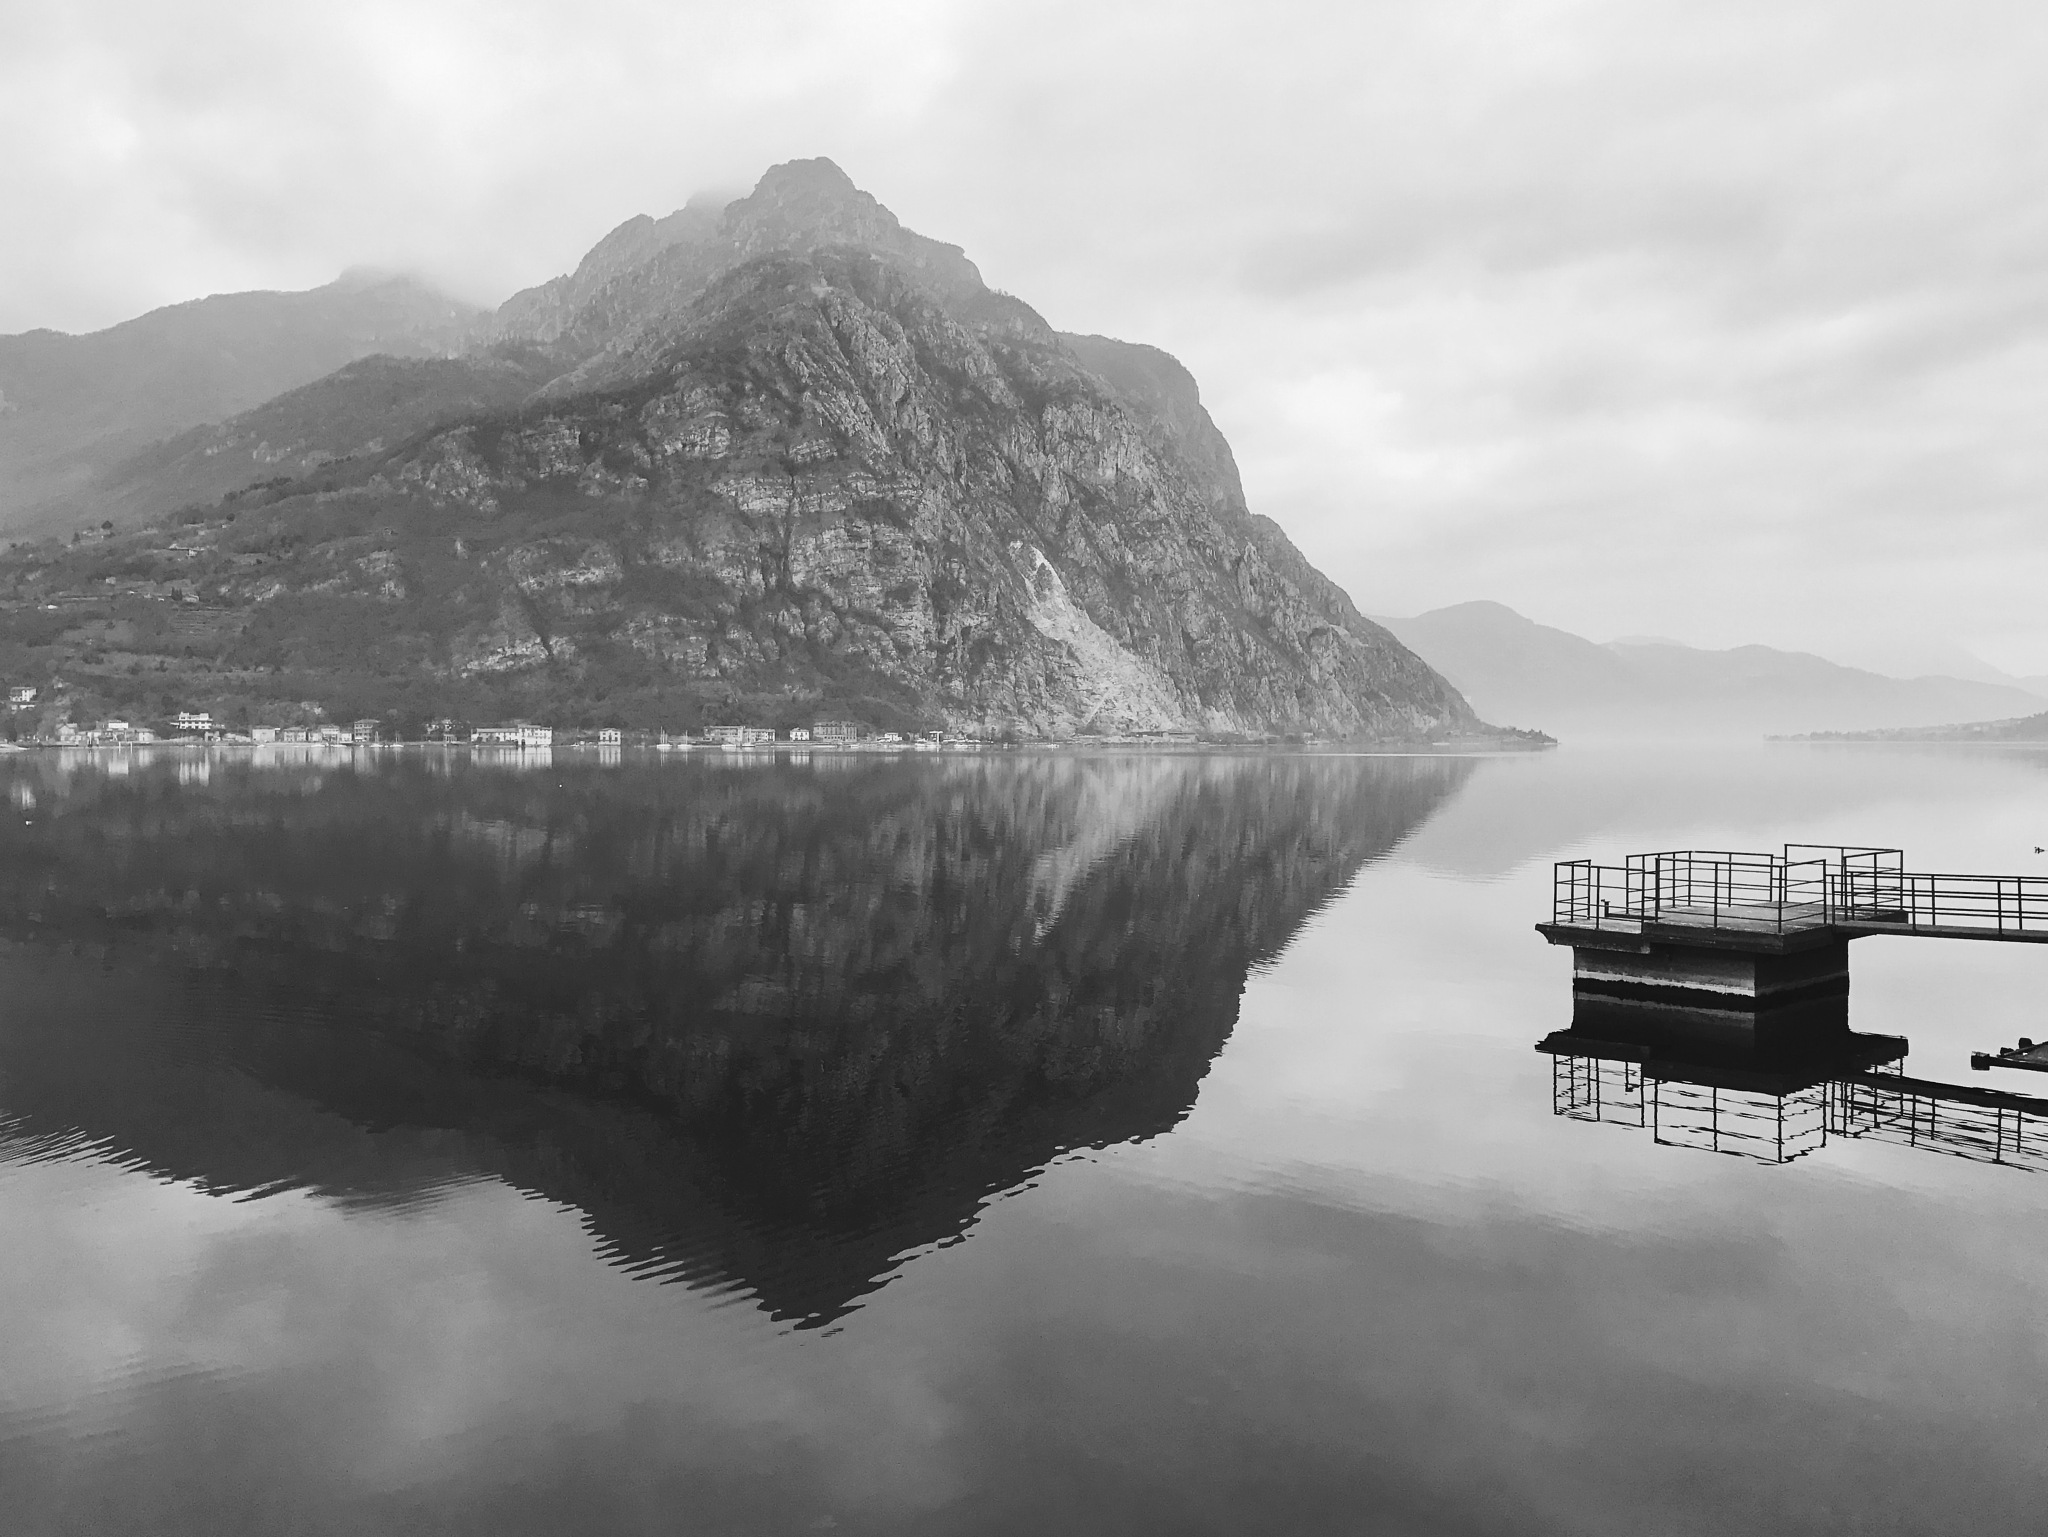 Lake Como without wind - Lecco by Tobia